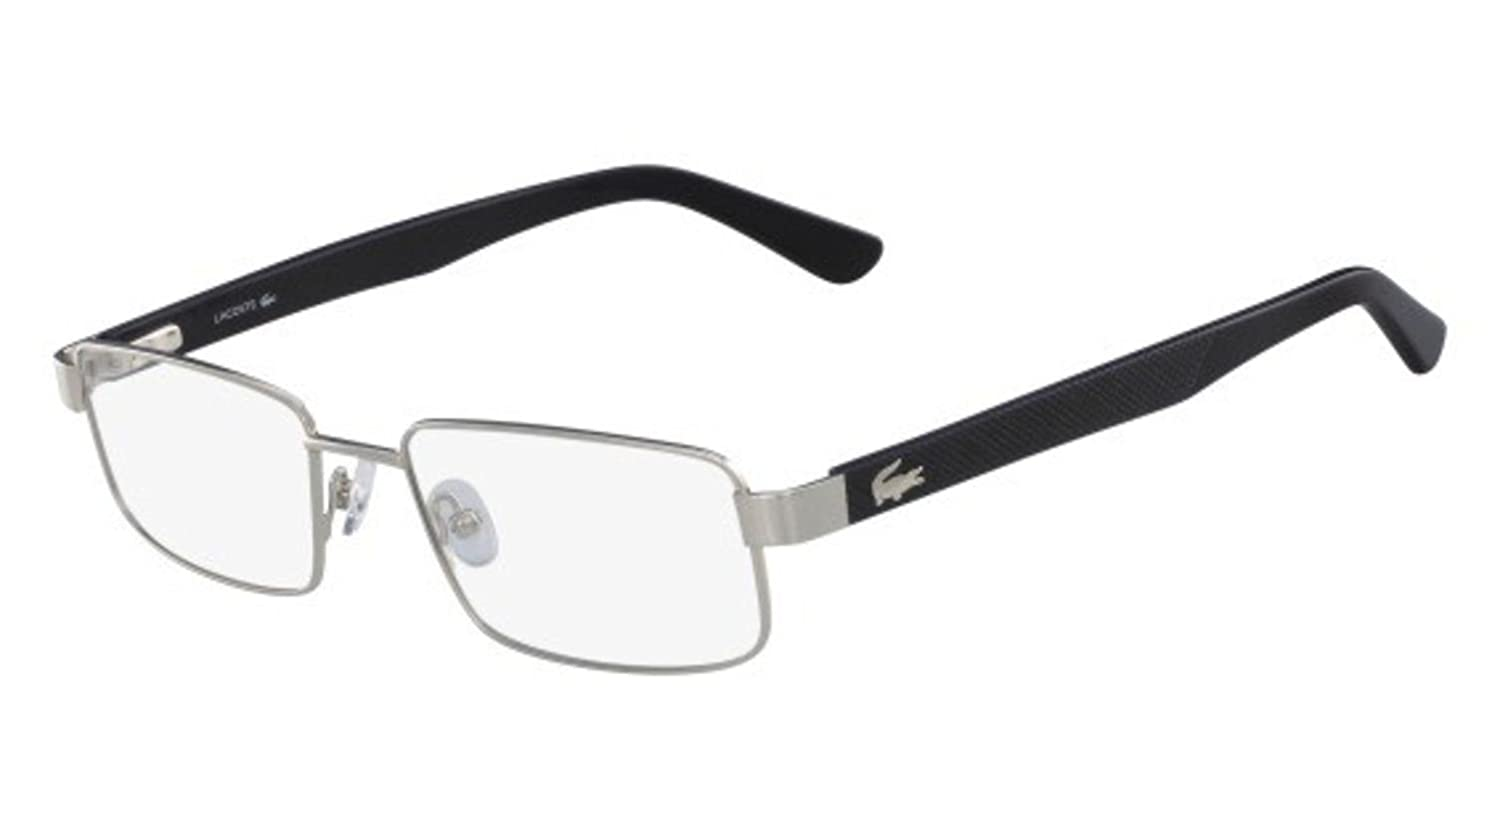 f4d45060313 Eyeglasses LACOSTE L 2238 045 SILVER at Amazon Men s Clothing store